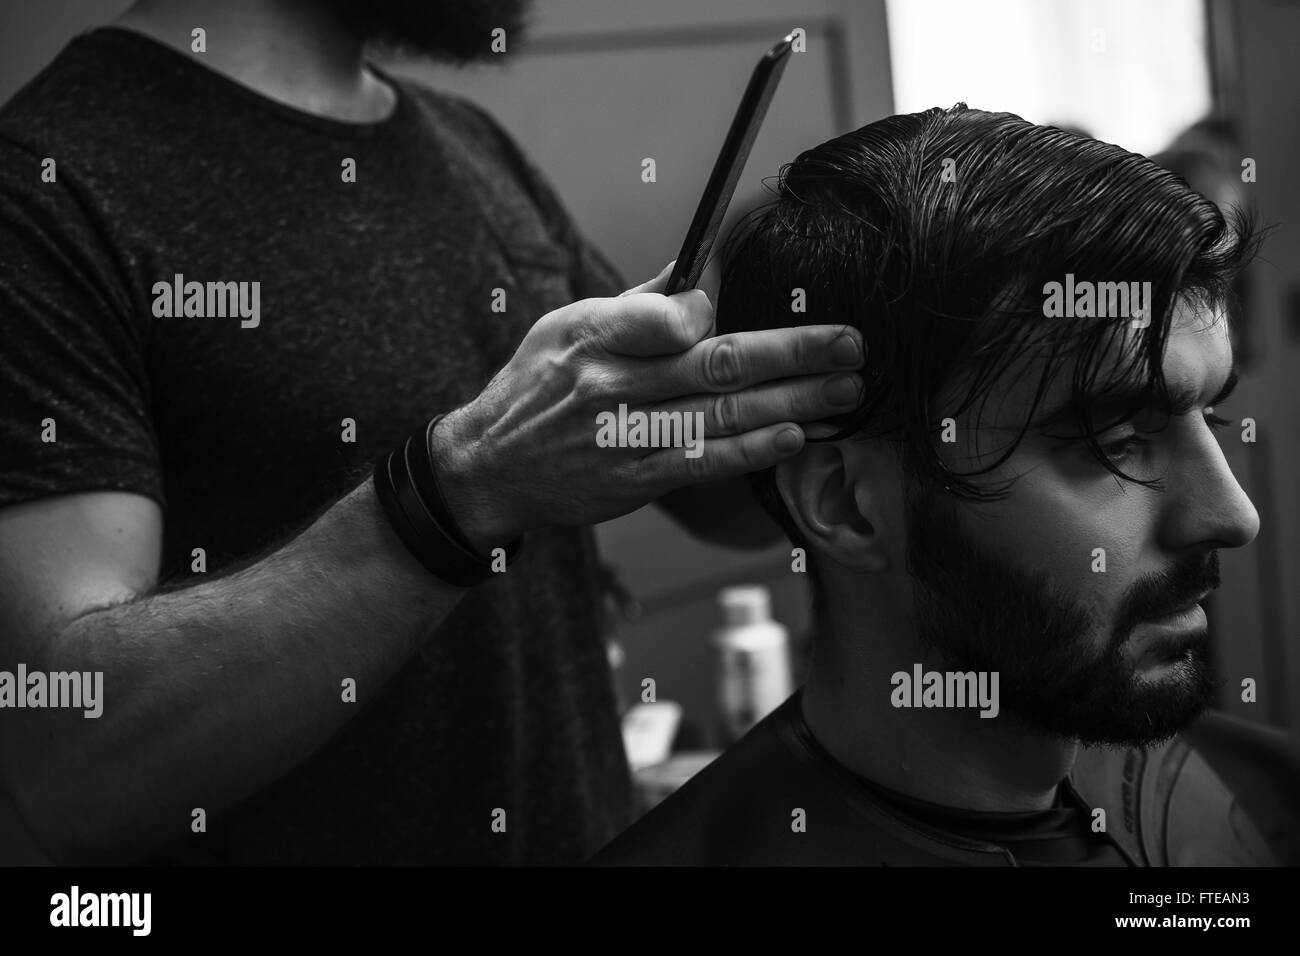 Male barber combing and shaving hair of a male client Stock Photo